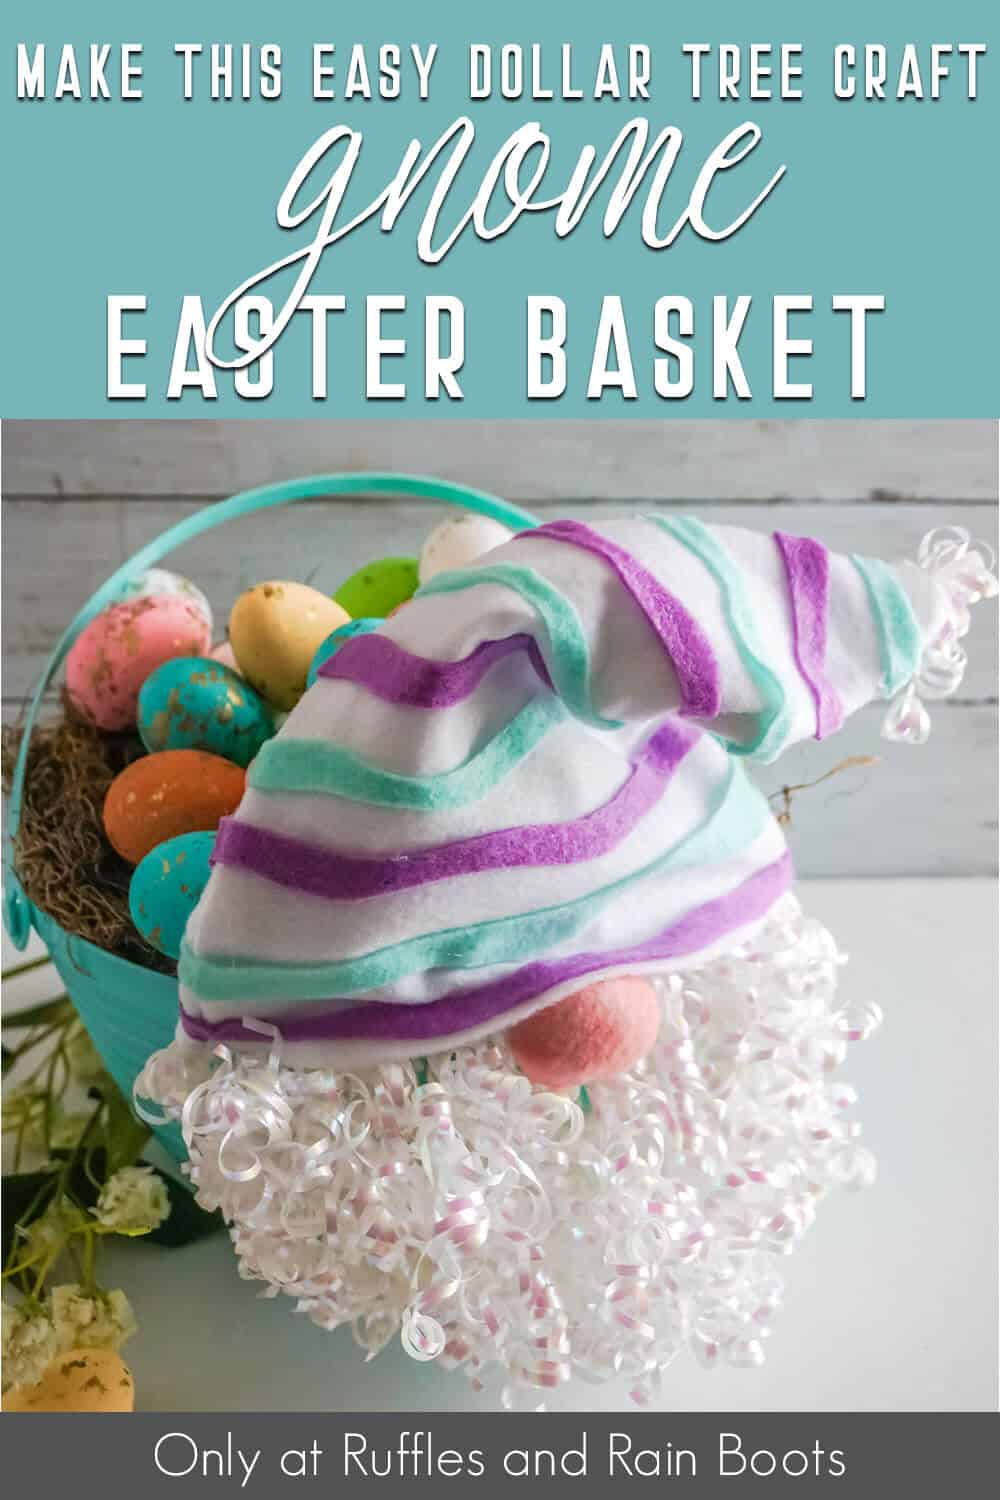 easter gnome basket dollar tree craft with text which reads make this easy dollar tree craft gnome easter basket